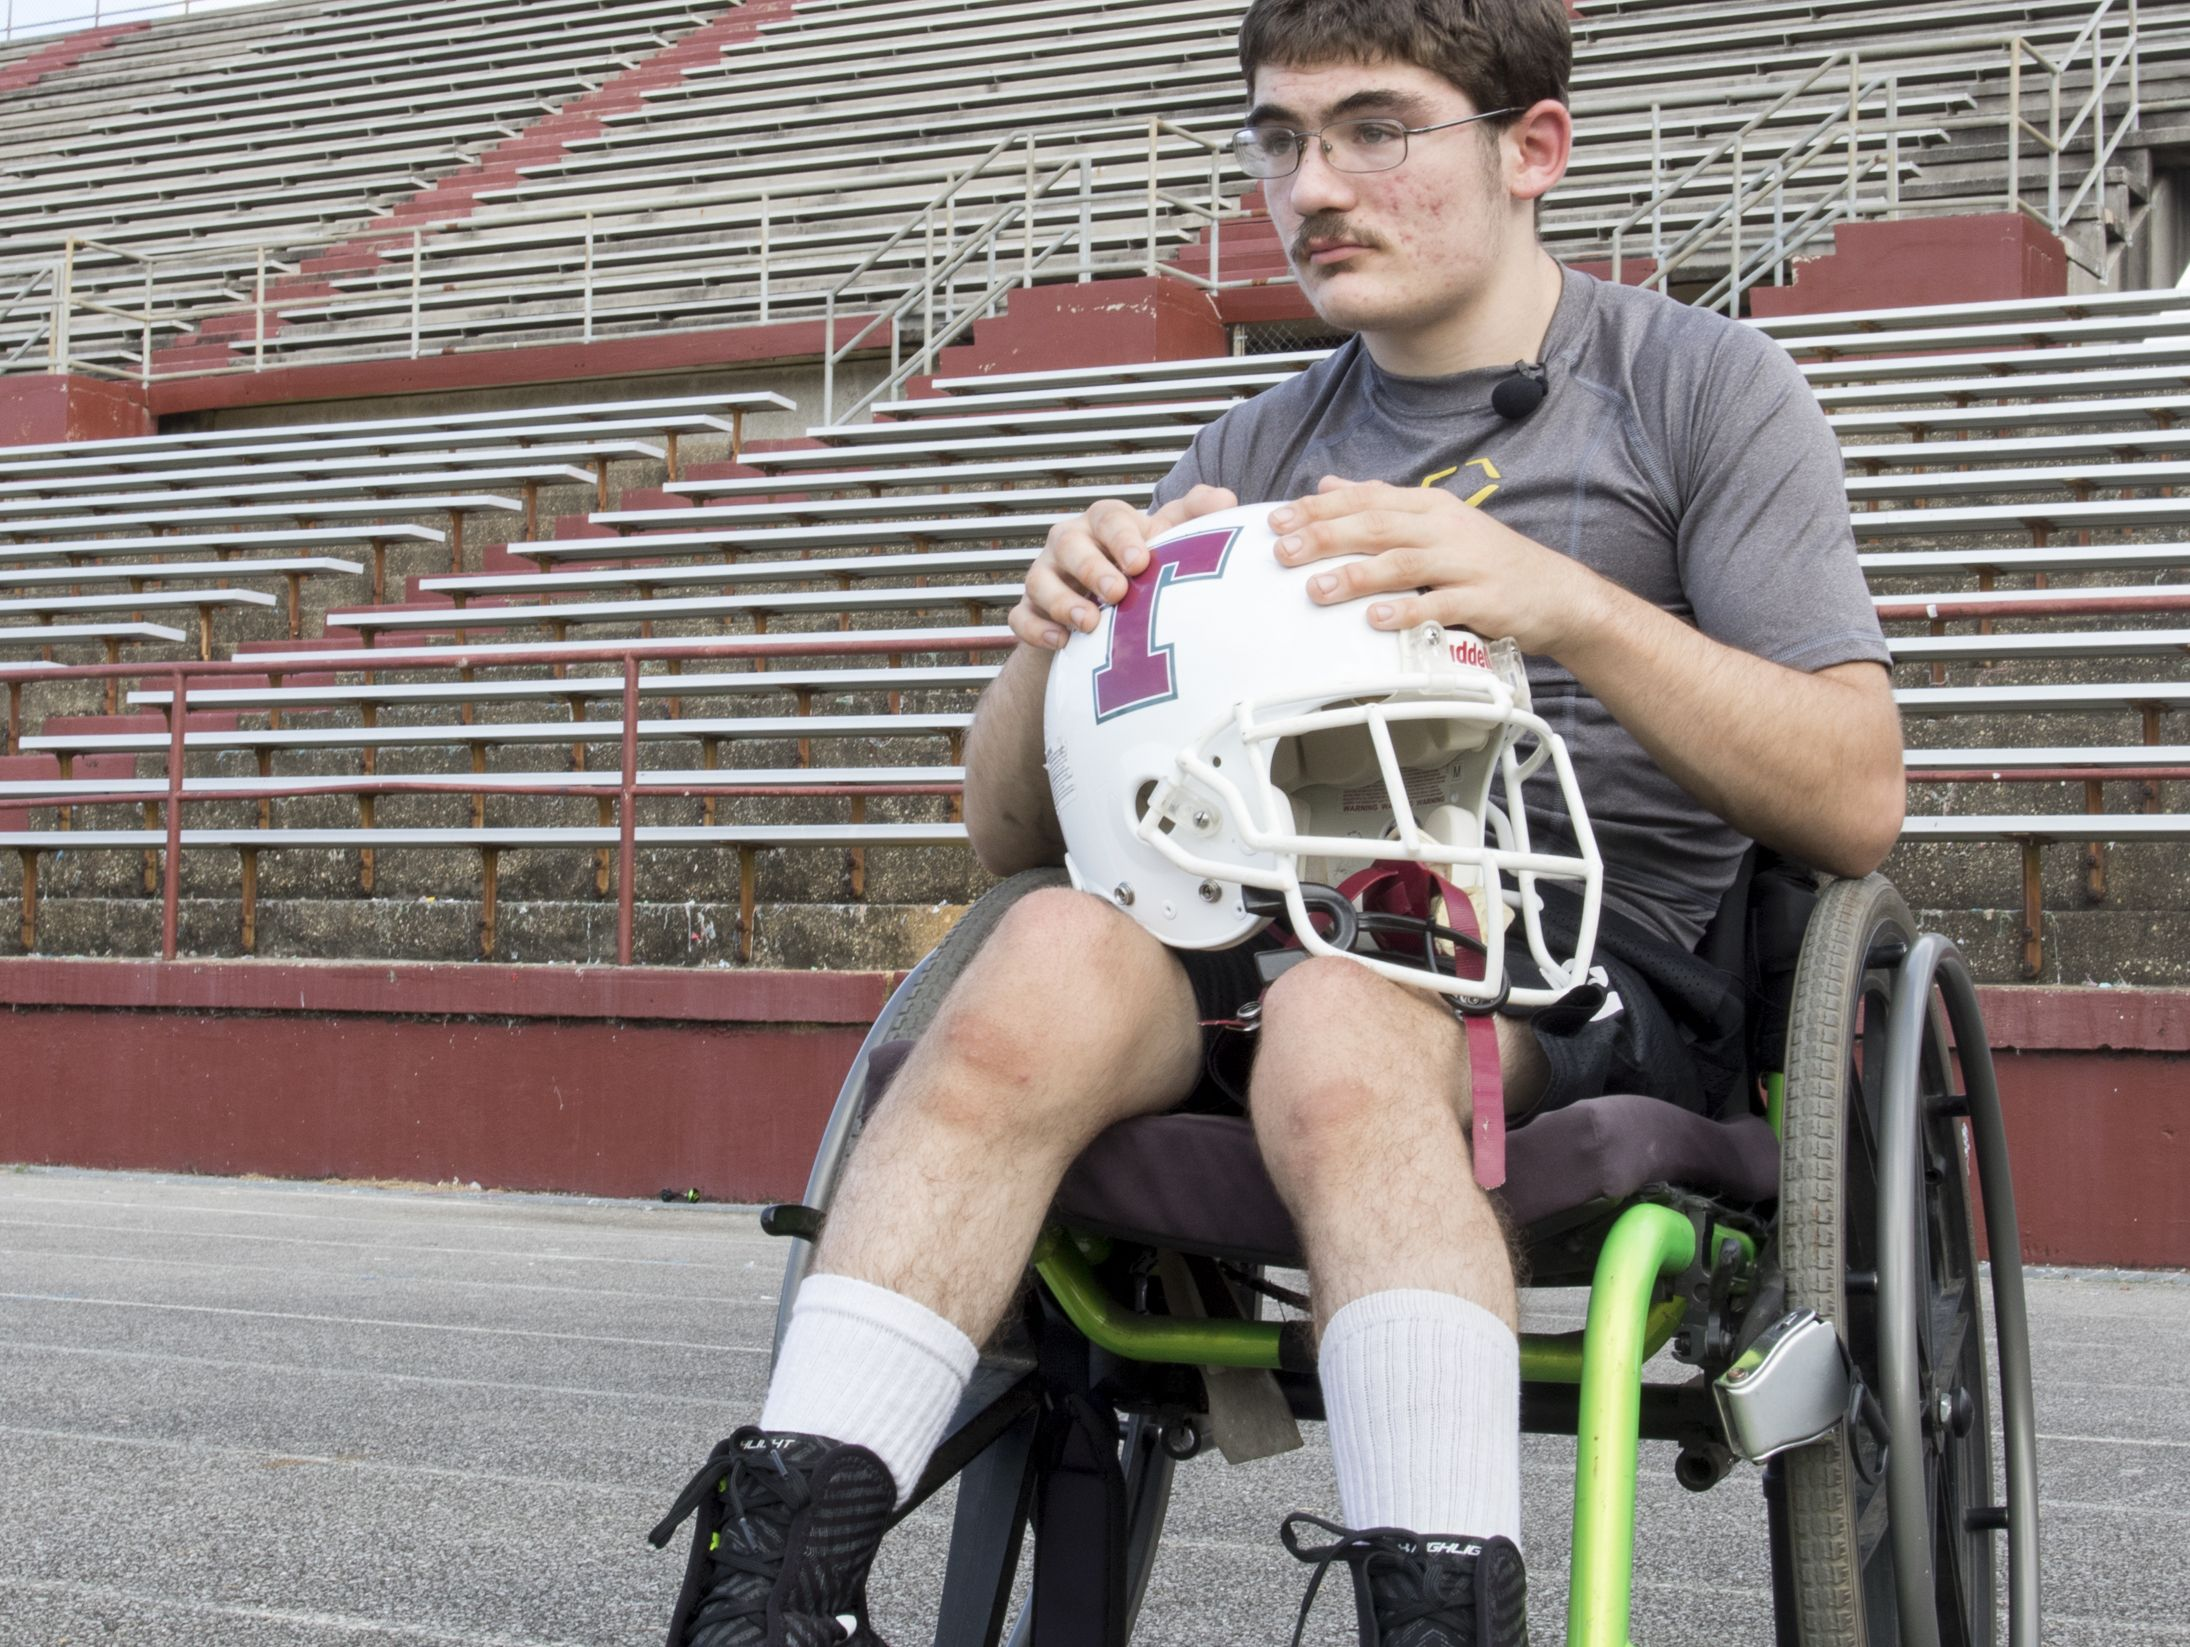 Markus Baxley, a student with cerebral palsy, watches his teammates during football practice at Tate High School in Pensacola on Thursday, October 6, 2016. Baxley will fulfill a lifelong dream when he participates in one play in the Friday night game against Pace High School.